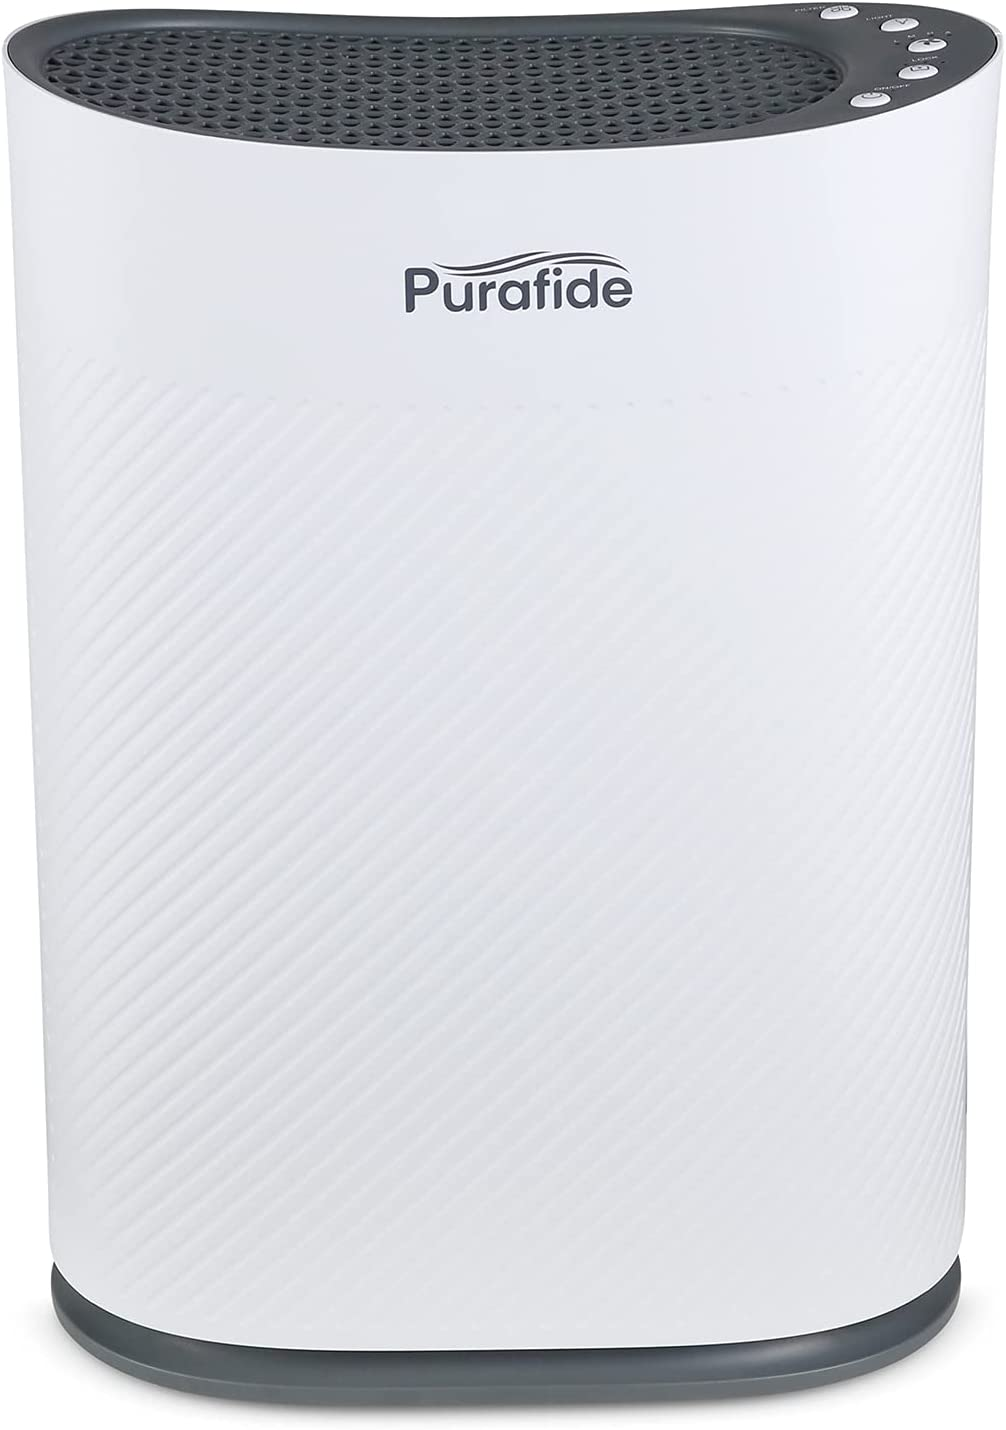 Purafide XP280 | 2-Year Filter Life | H13 HEPA Filter Air Purifier for 850 Sq Ft Coverage. Home, Bedroom, Allergies, Pets, Dust | US Veteran Owned & Operated - White, 1-Pack